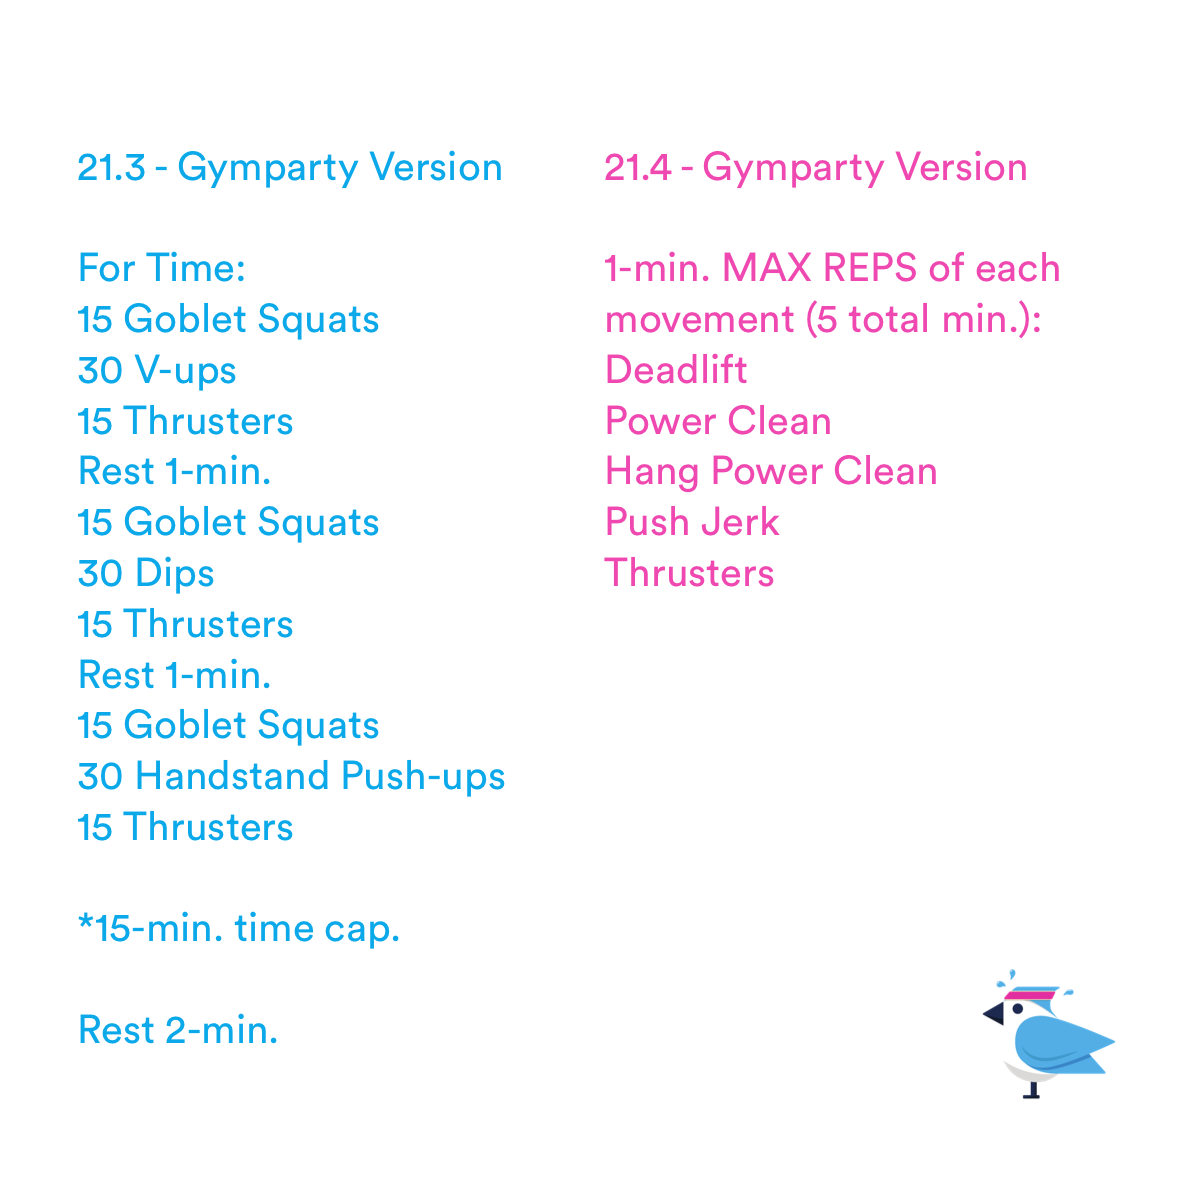 2021-03-27 CrossFit 21.3 & 21.4 Gymparty Version